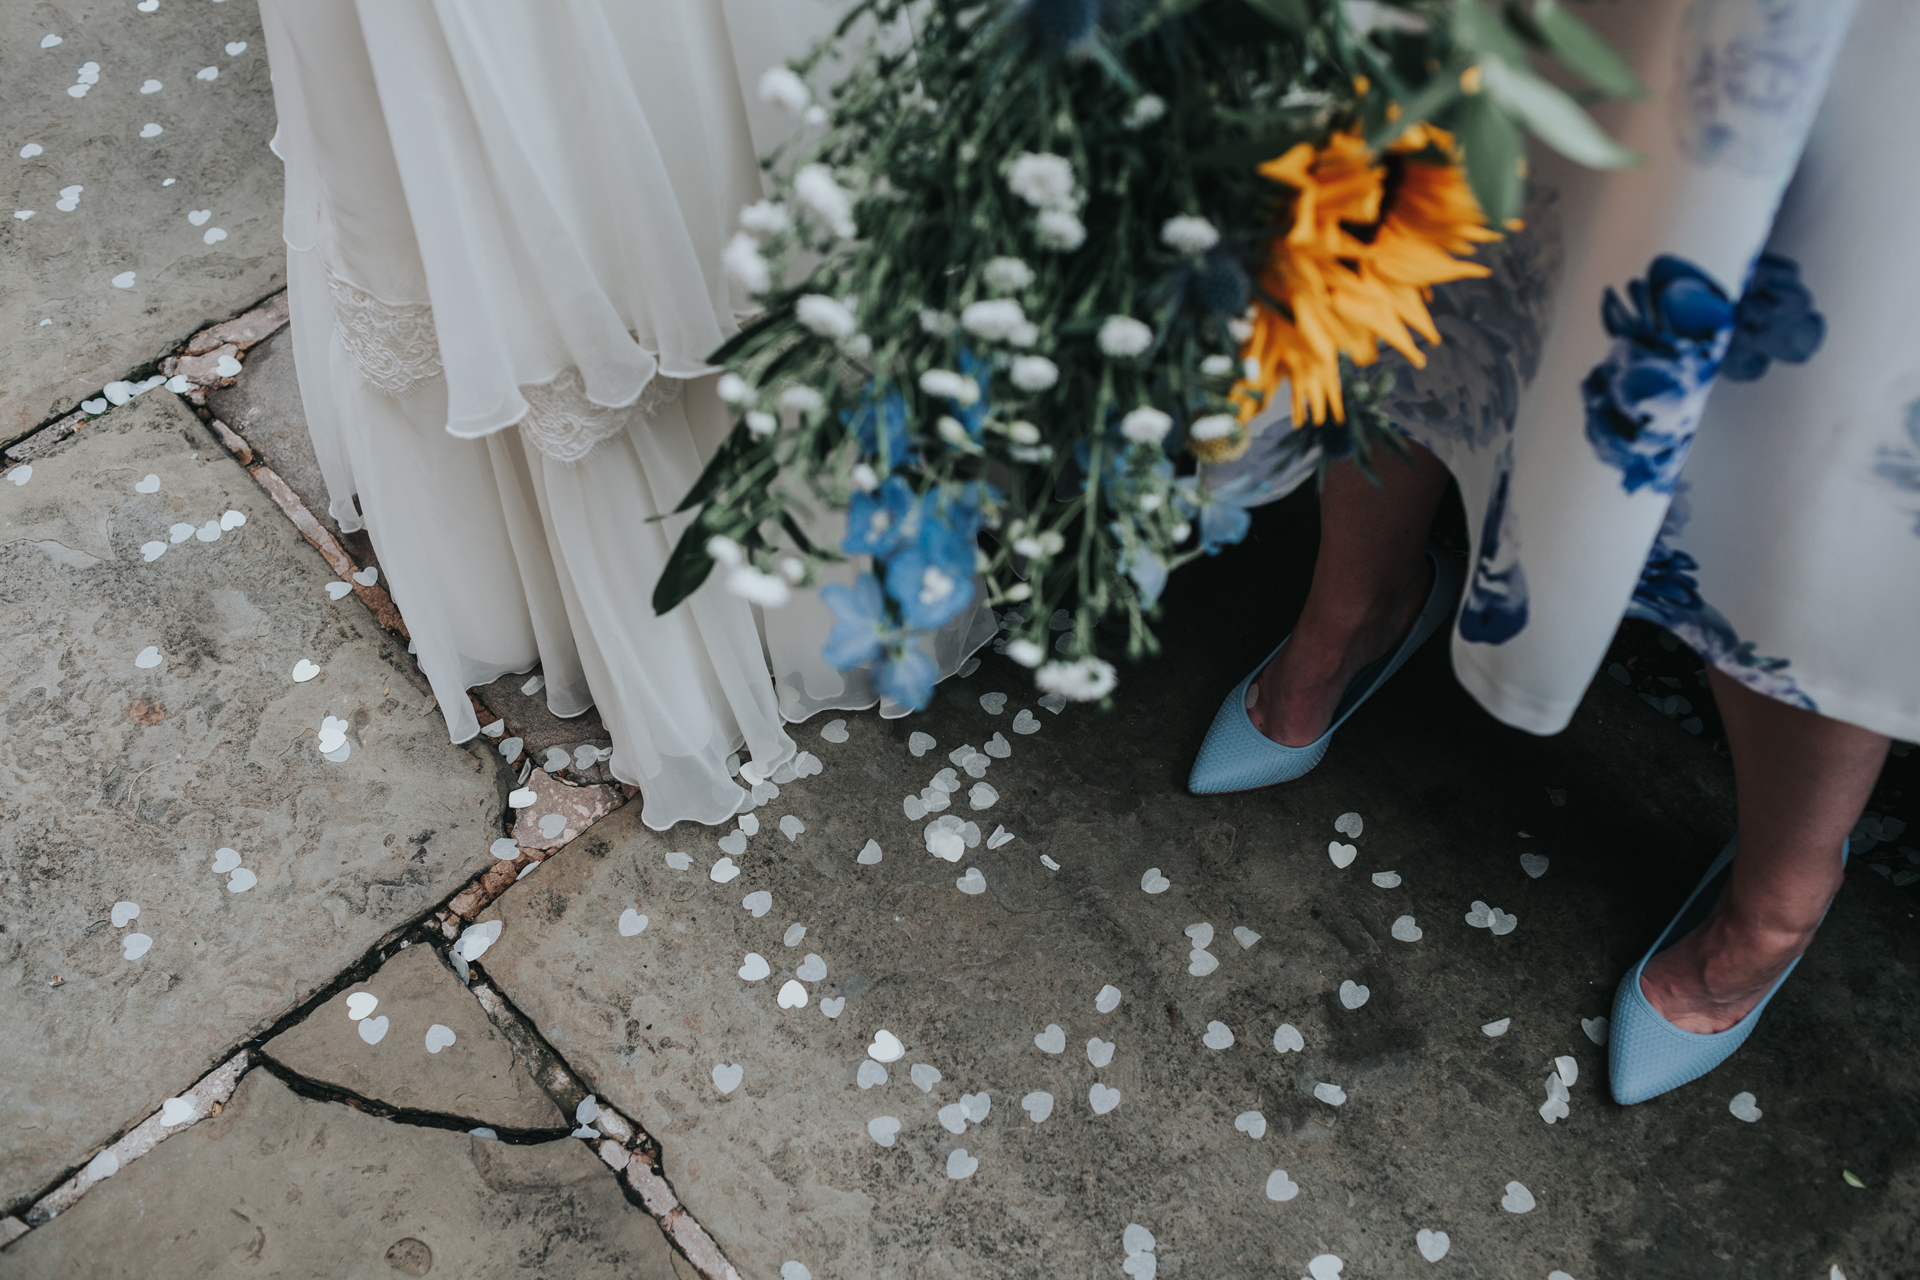 Brides dress, flowers, shoes and confetti.